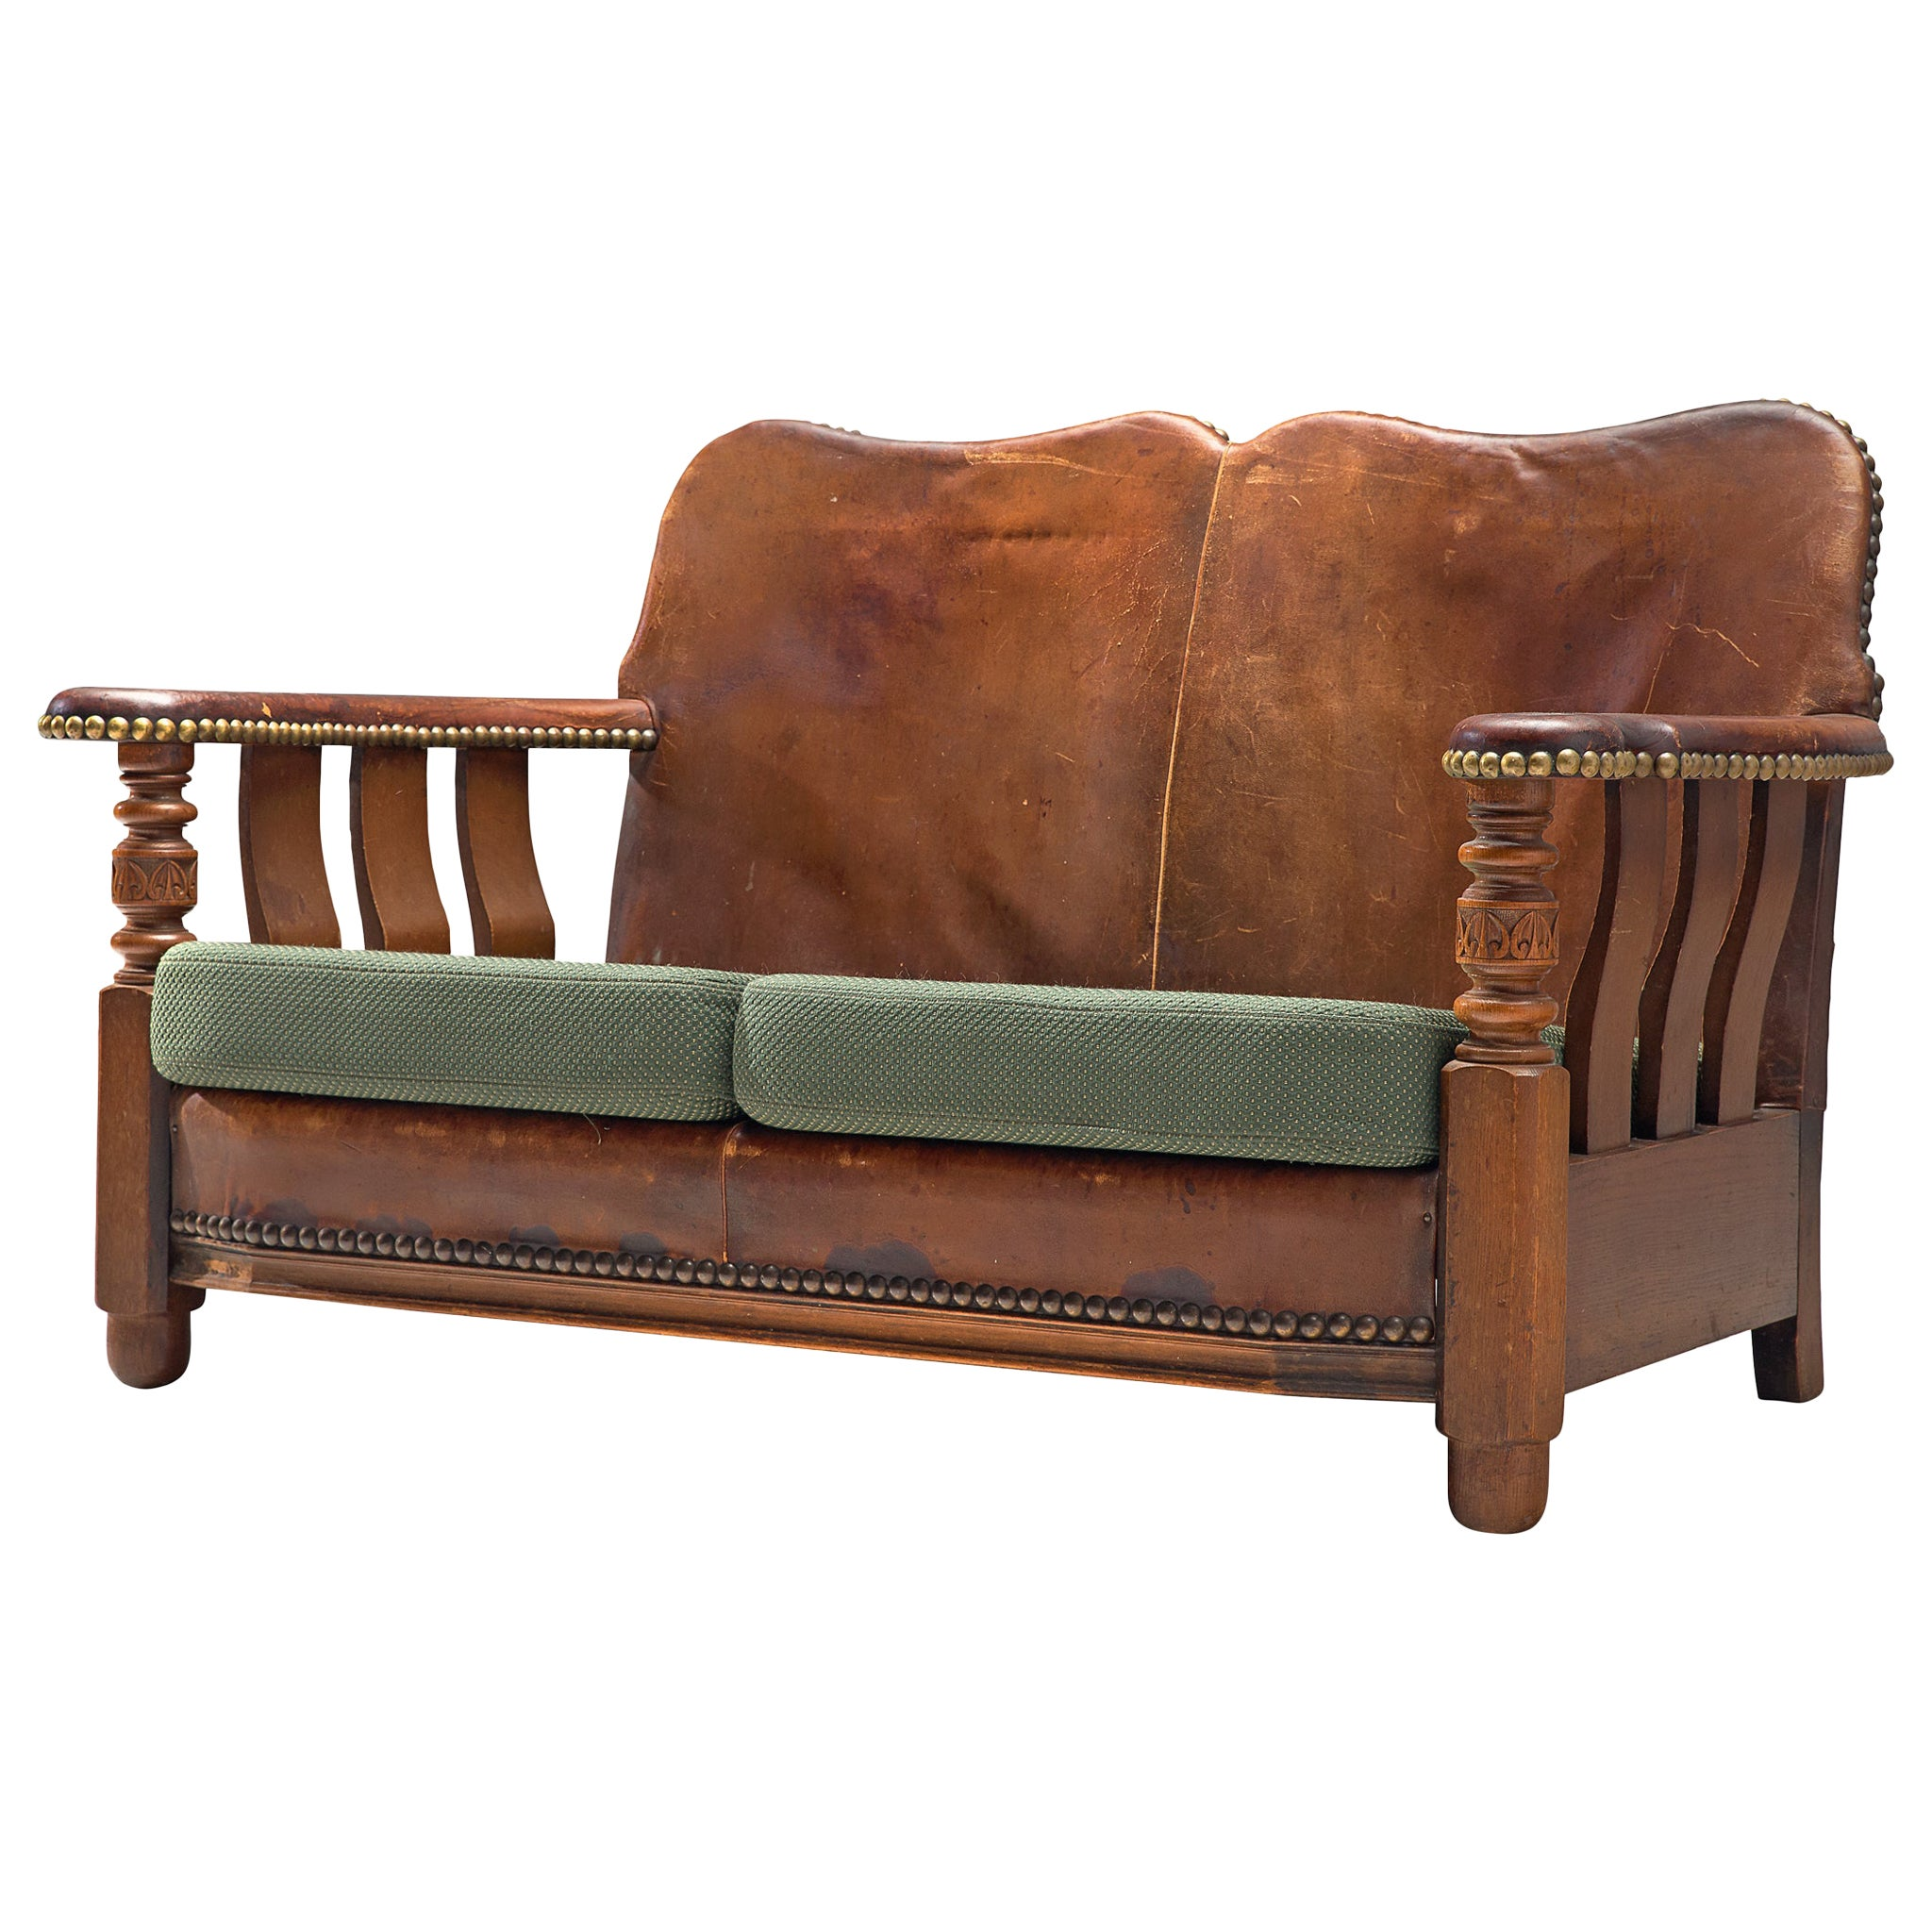 Early Danish Settee Sofa with Patinated Leather